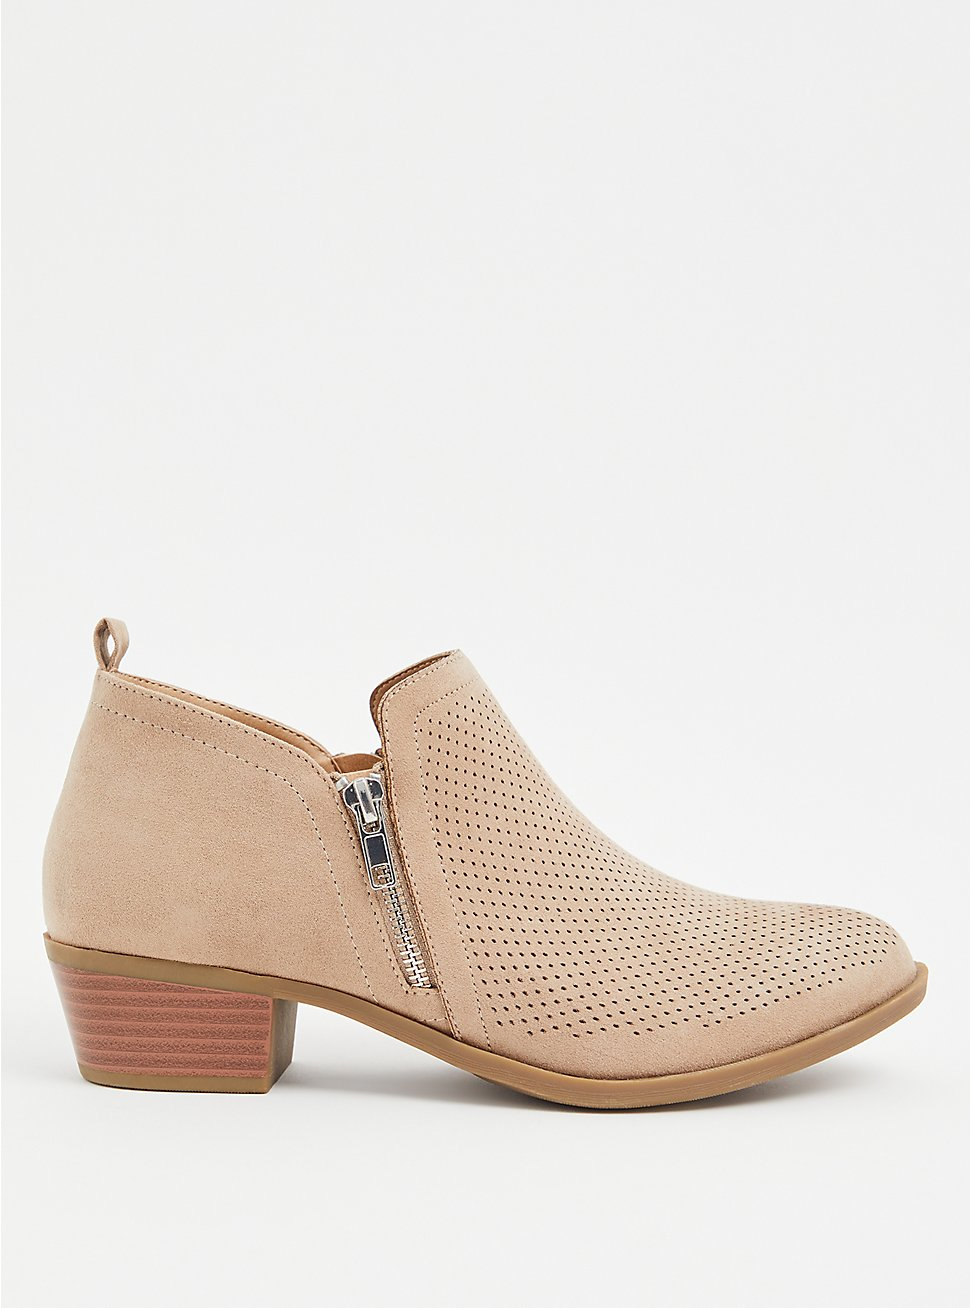 Beige Faux Suede Perforated Ankle Boot (WW), TAN/BEIGE, hi-res